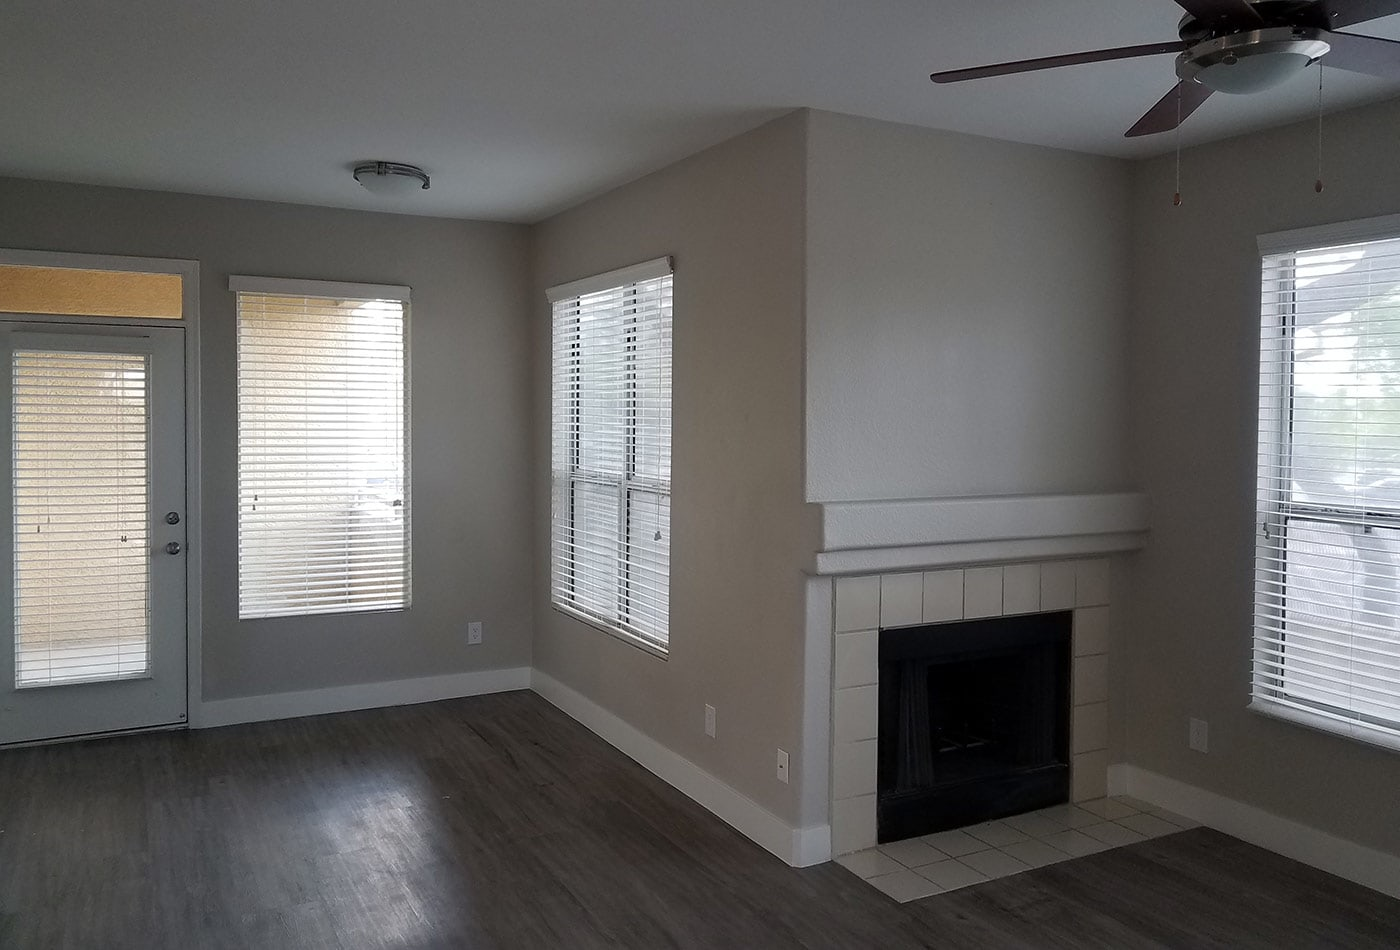 Hardwood floors and fireplace in model home living room at The Retreat Apartments